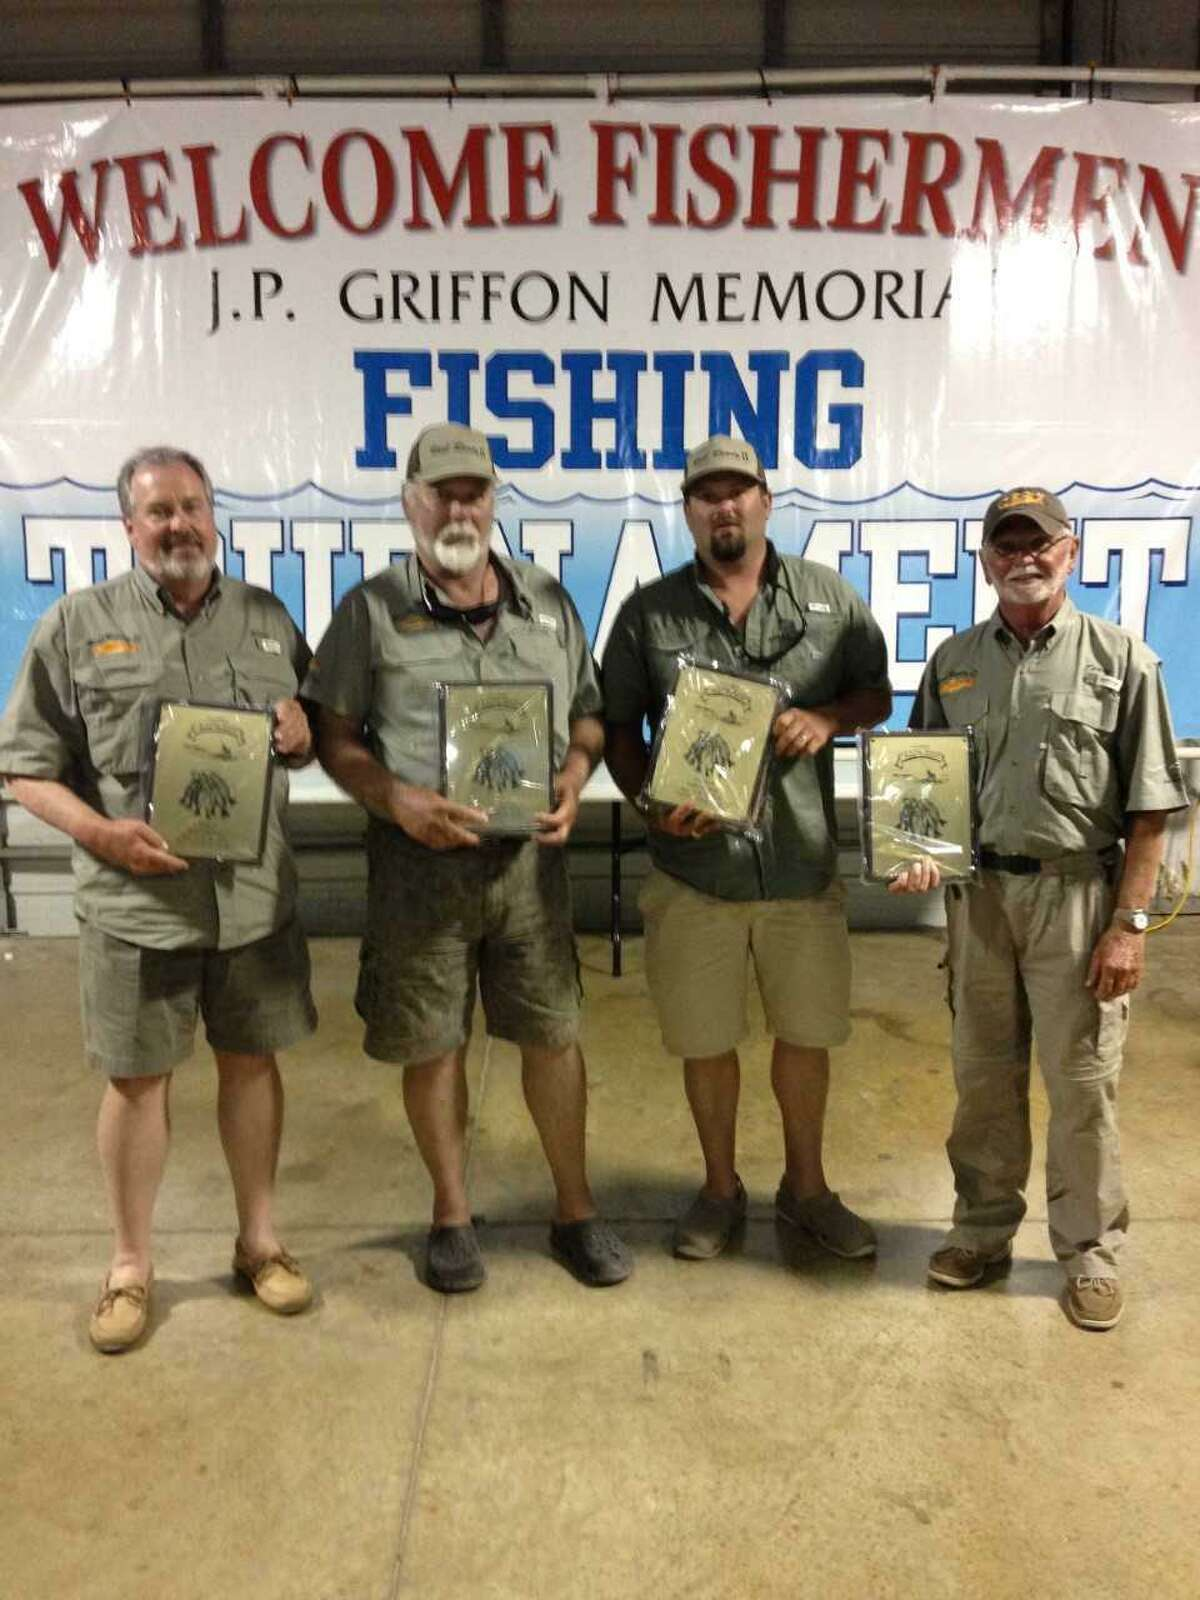 Winners in the open division was team Reel Ready II, consisting of R. Allen Caudle, Scott Becker, Terry Eatherton and Cody Eatherton.